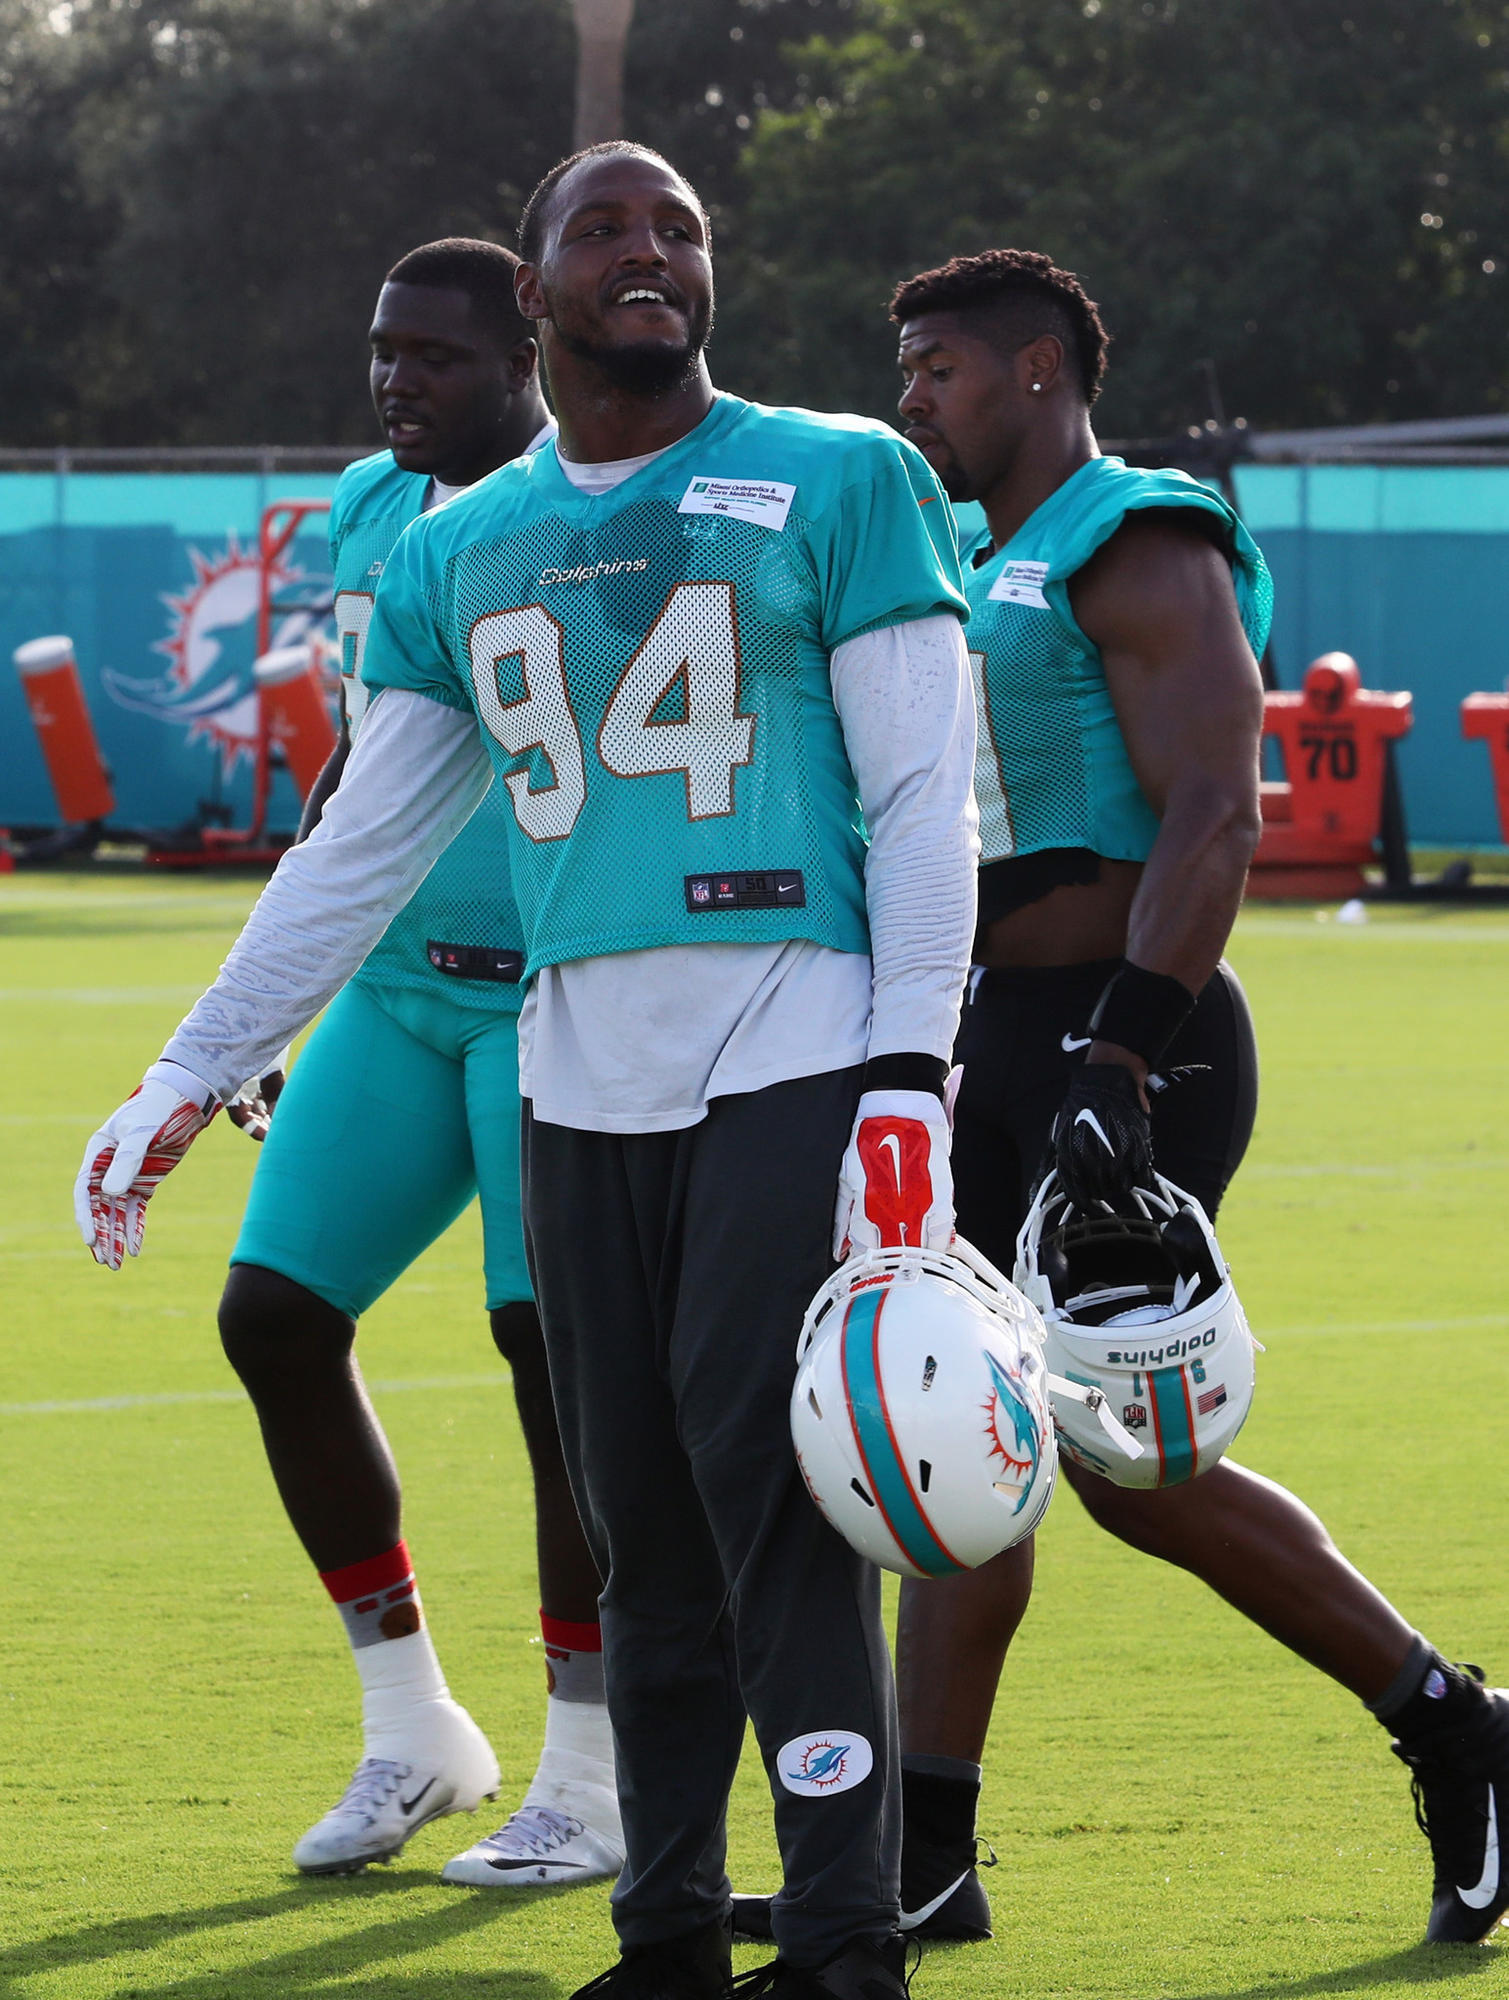 Fl-sp-dolphins-stock-report-20180730